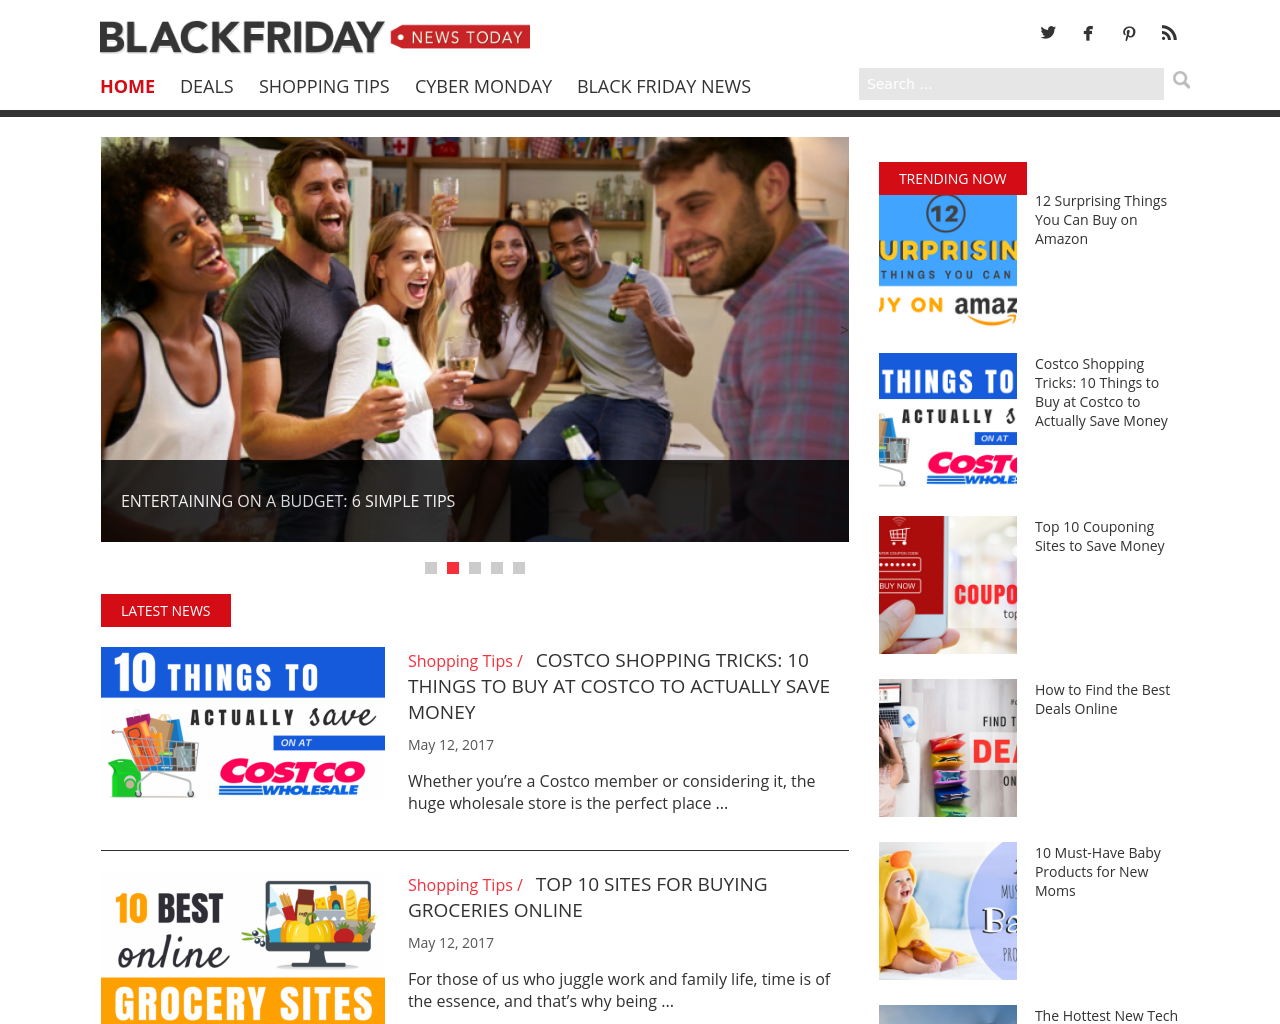 Black-Friday-News-Today-Advertising-Reviews-Pricing